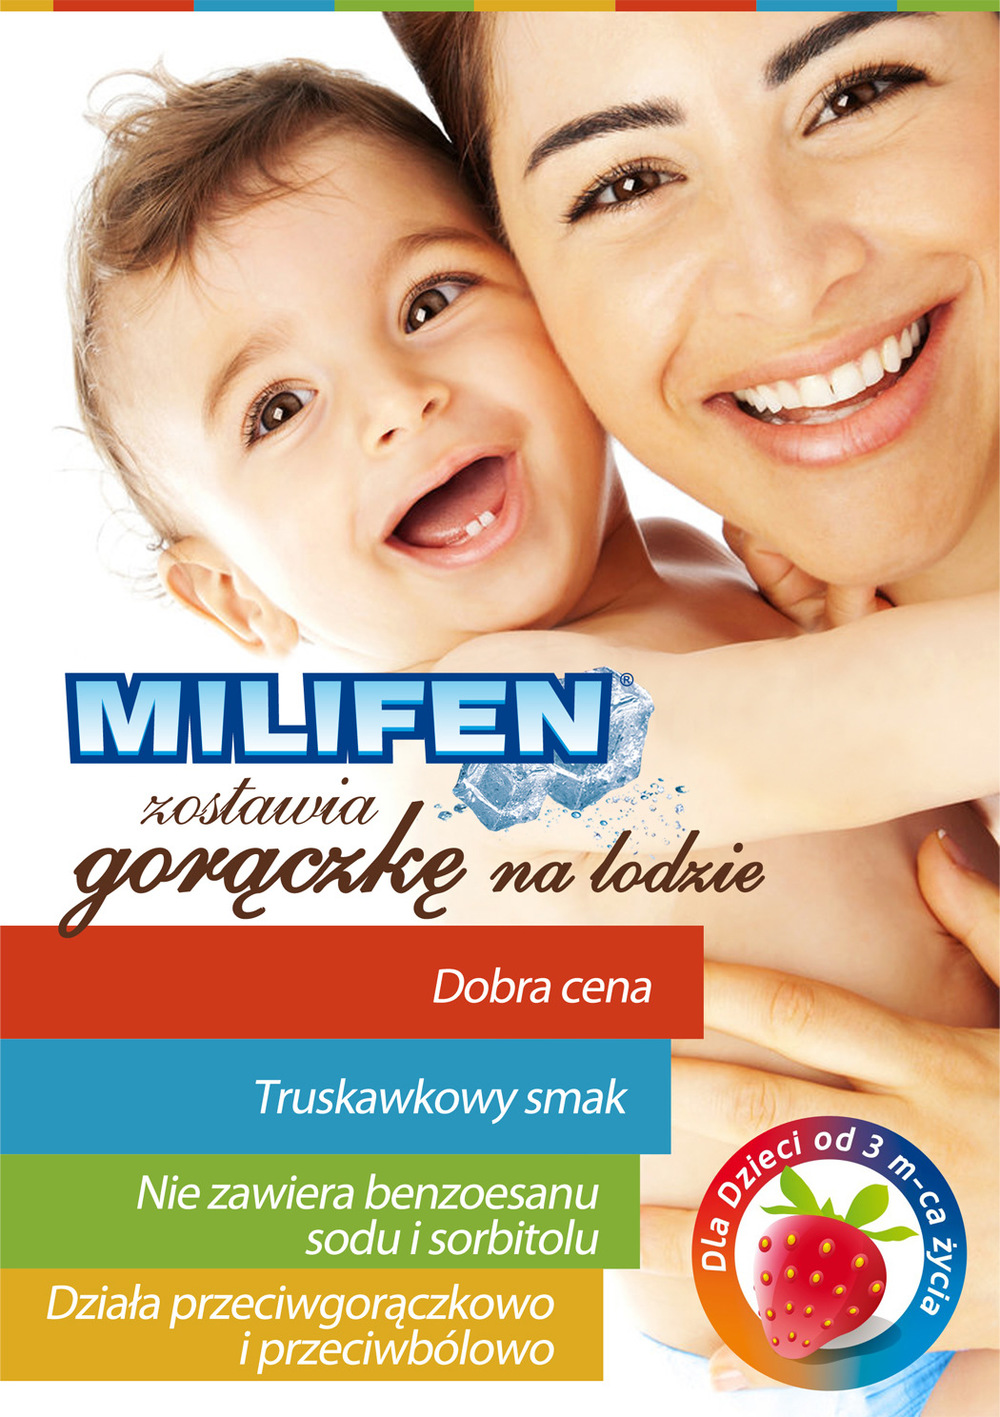 Luk De.Portfolio - Flyer, Medical product for children